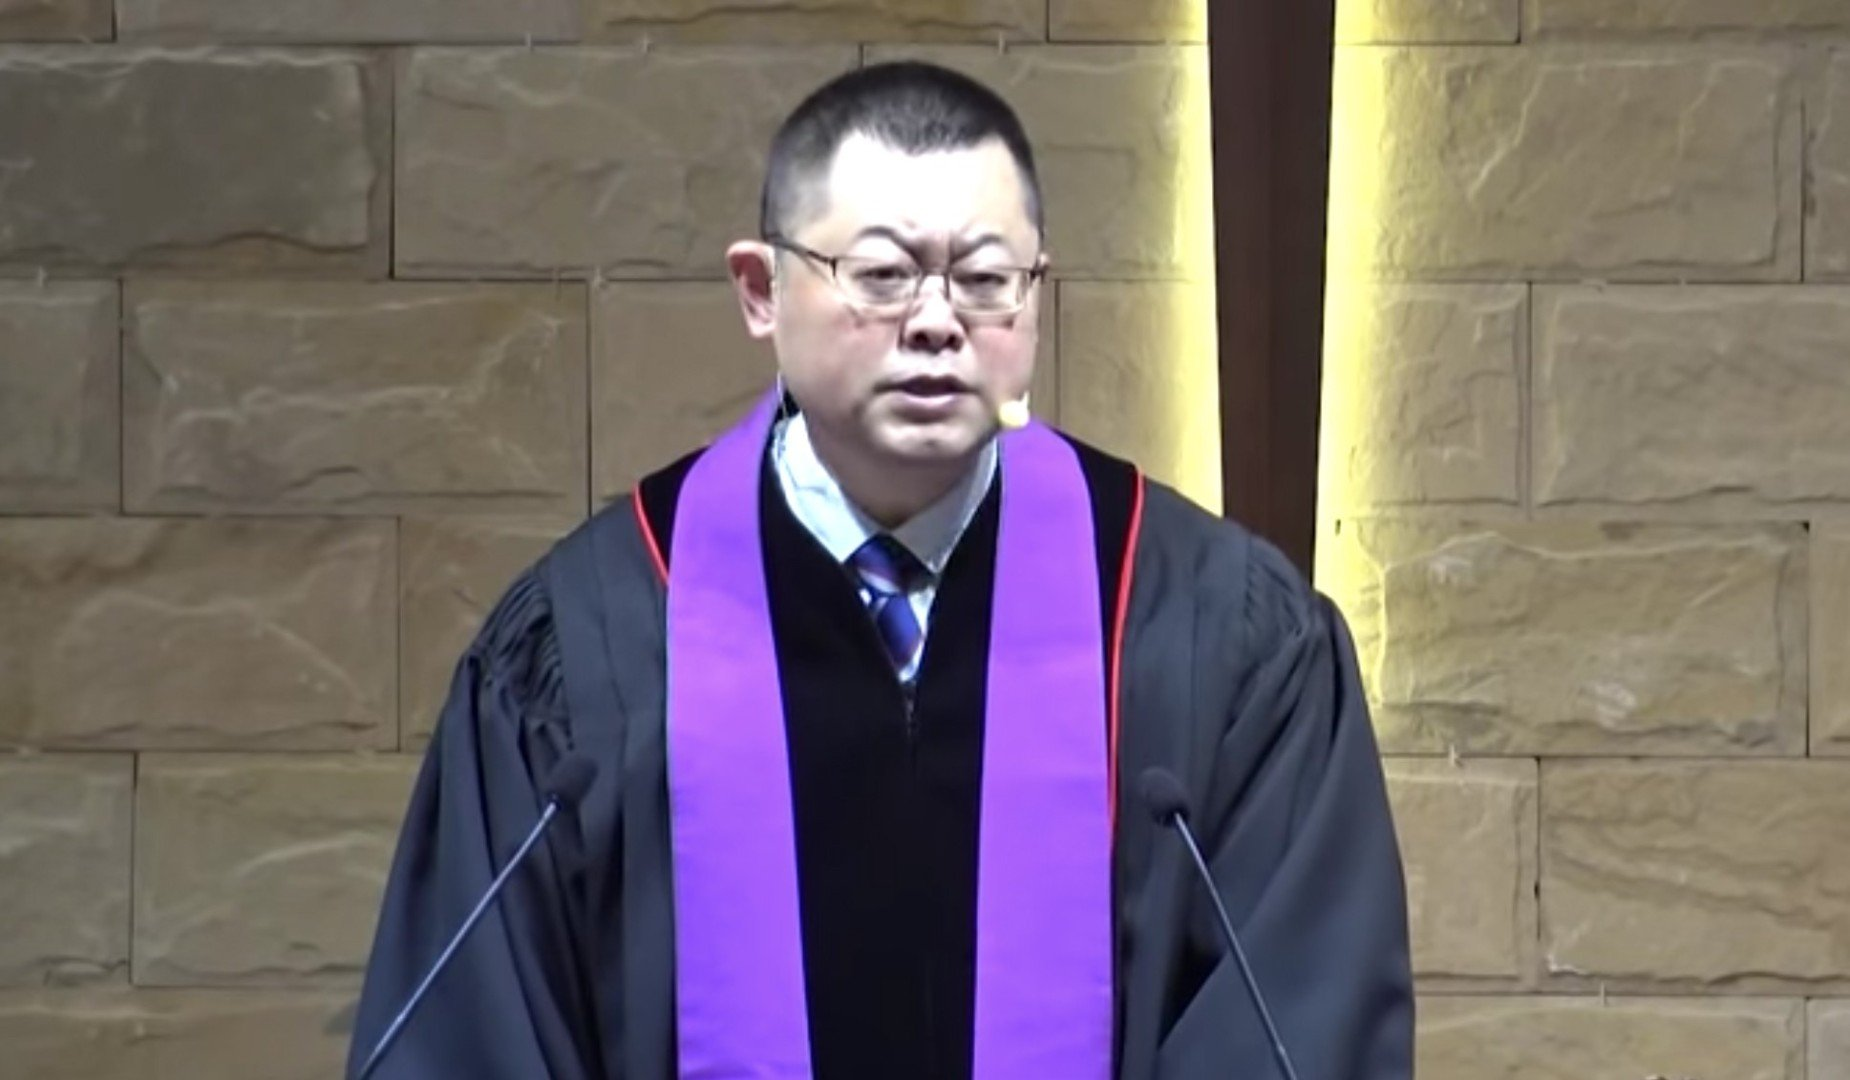 Christian pastor Wang Yi faces subversion charges in China